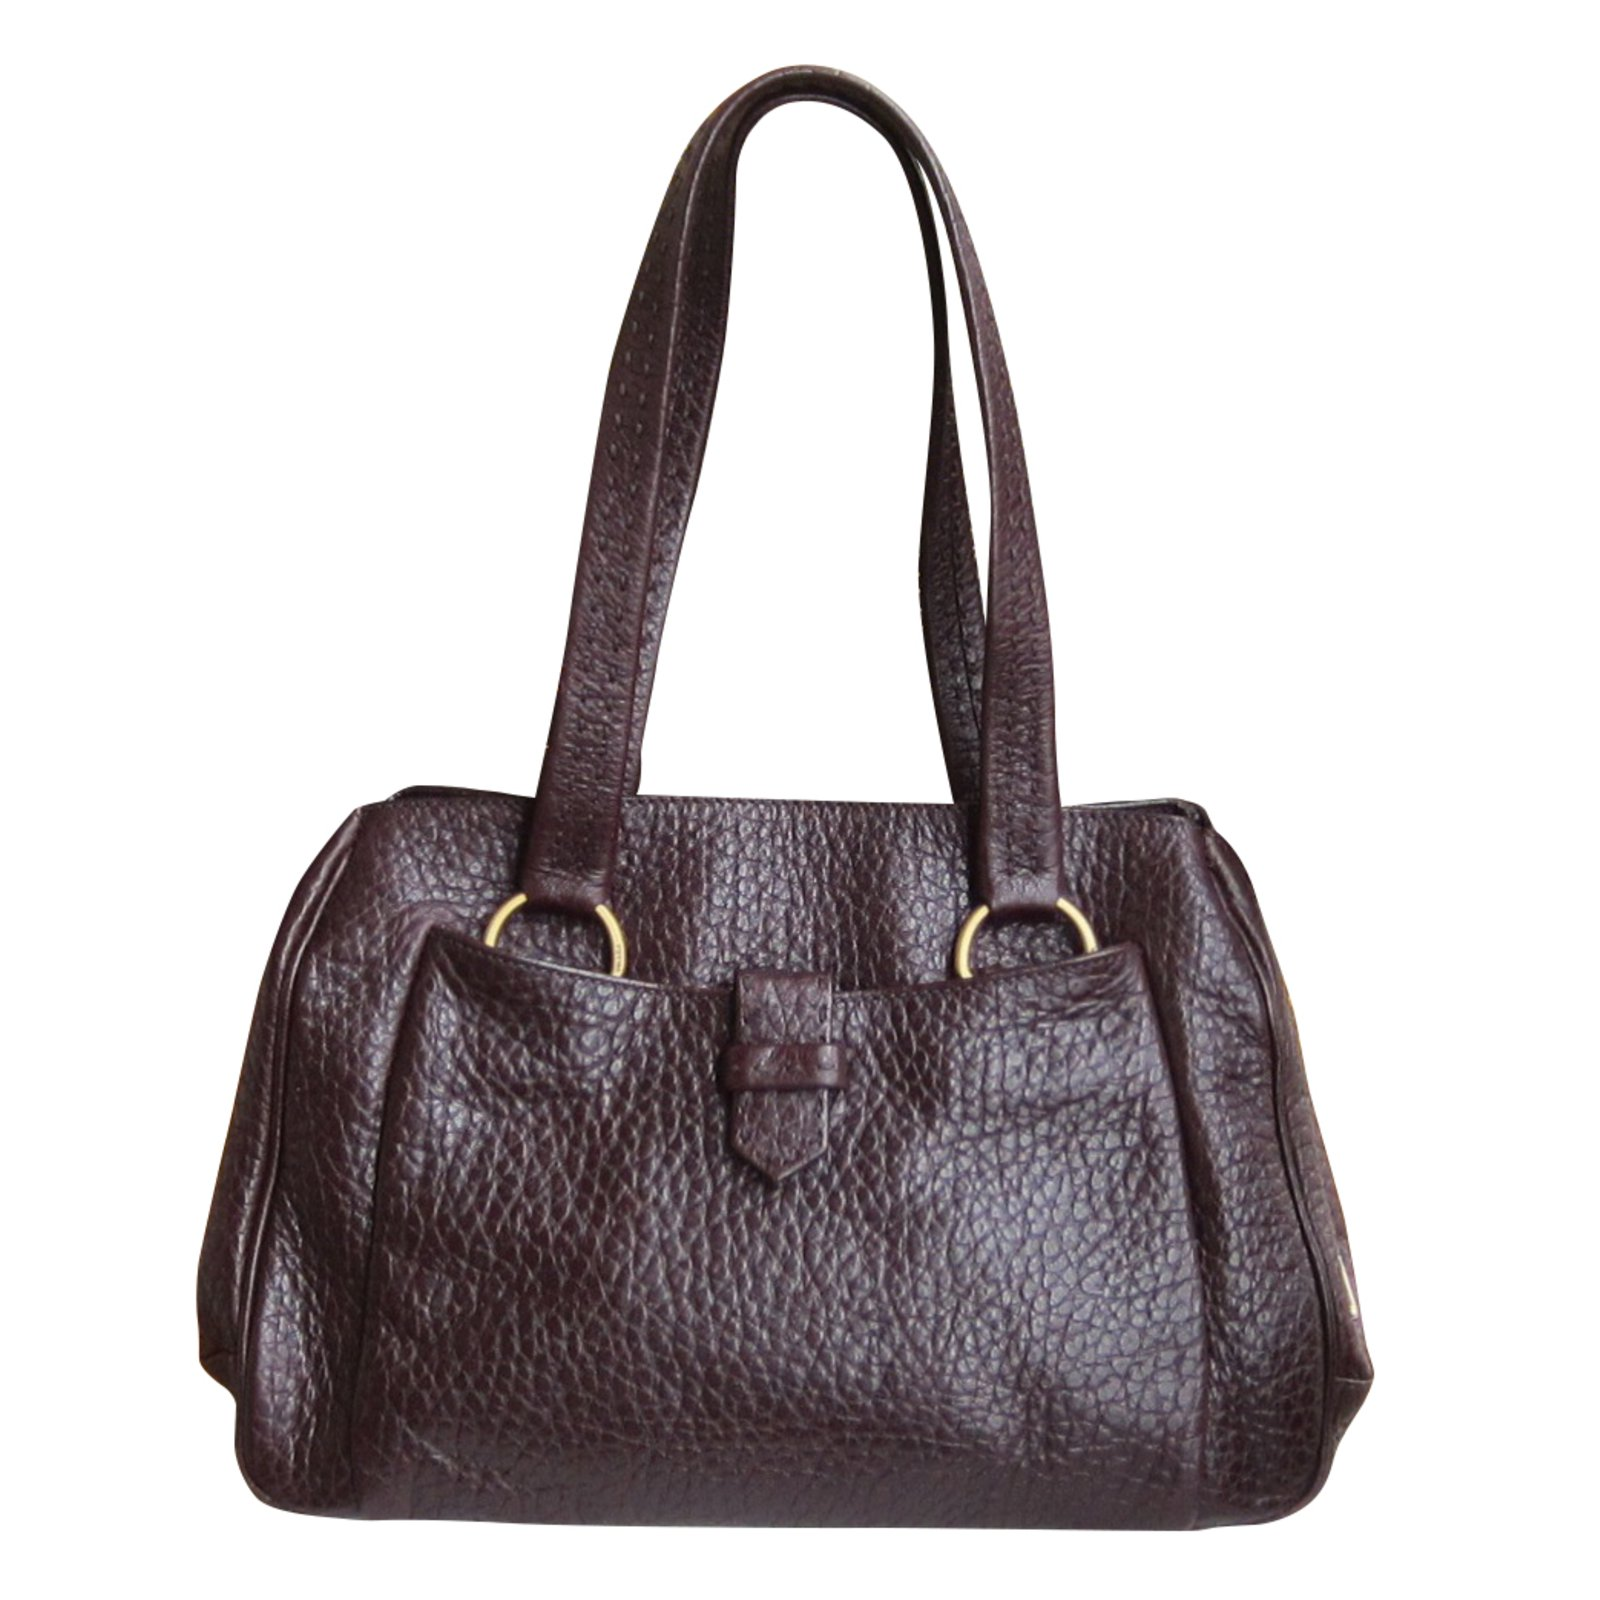 Prada Handbag Handbags Leather Brown ref.38140 - Joli Closet